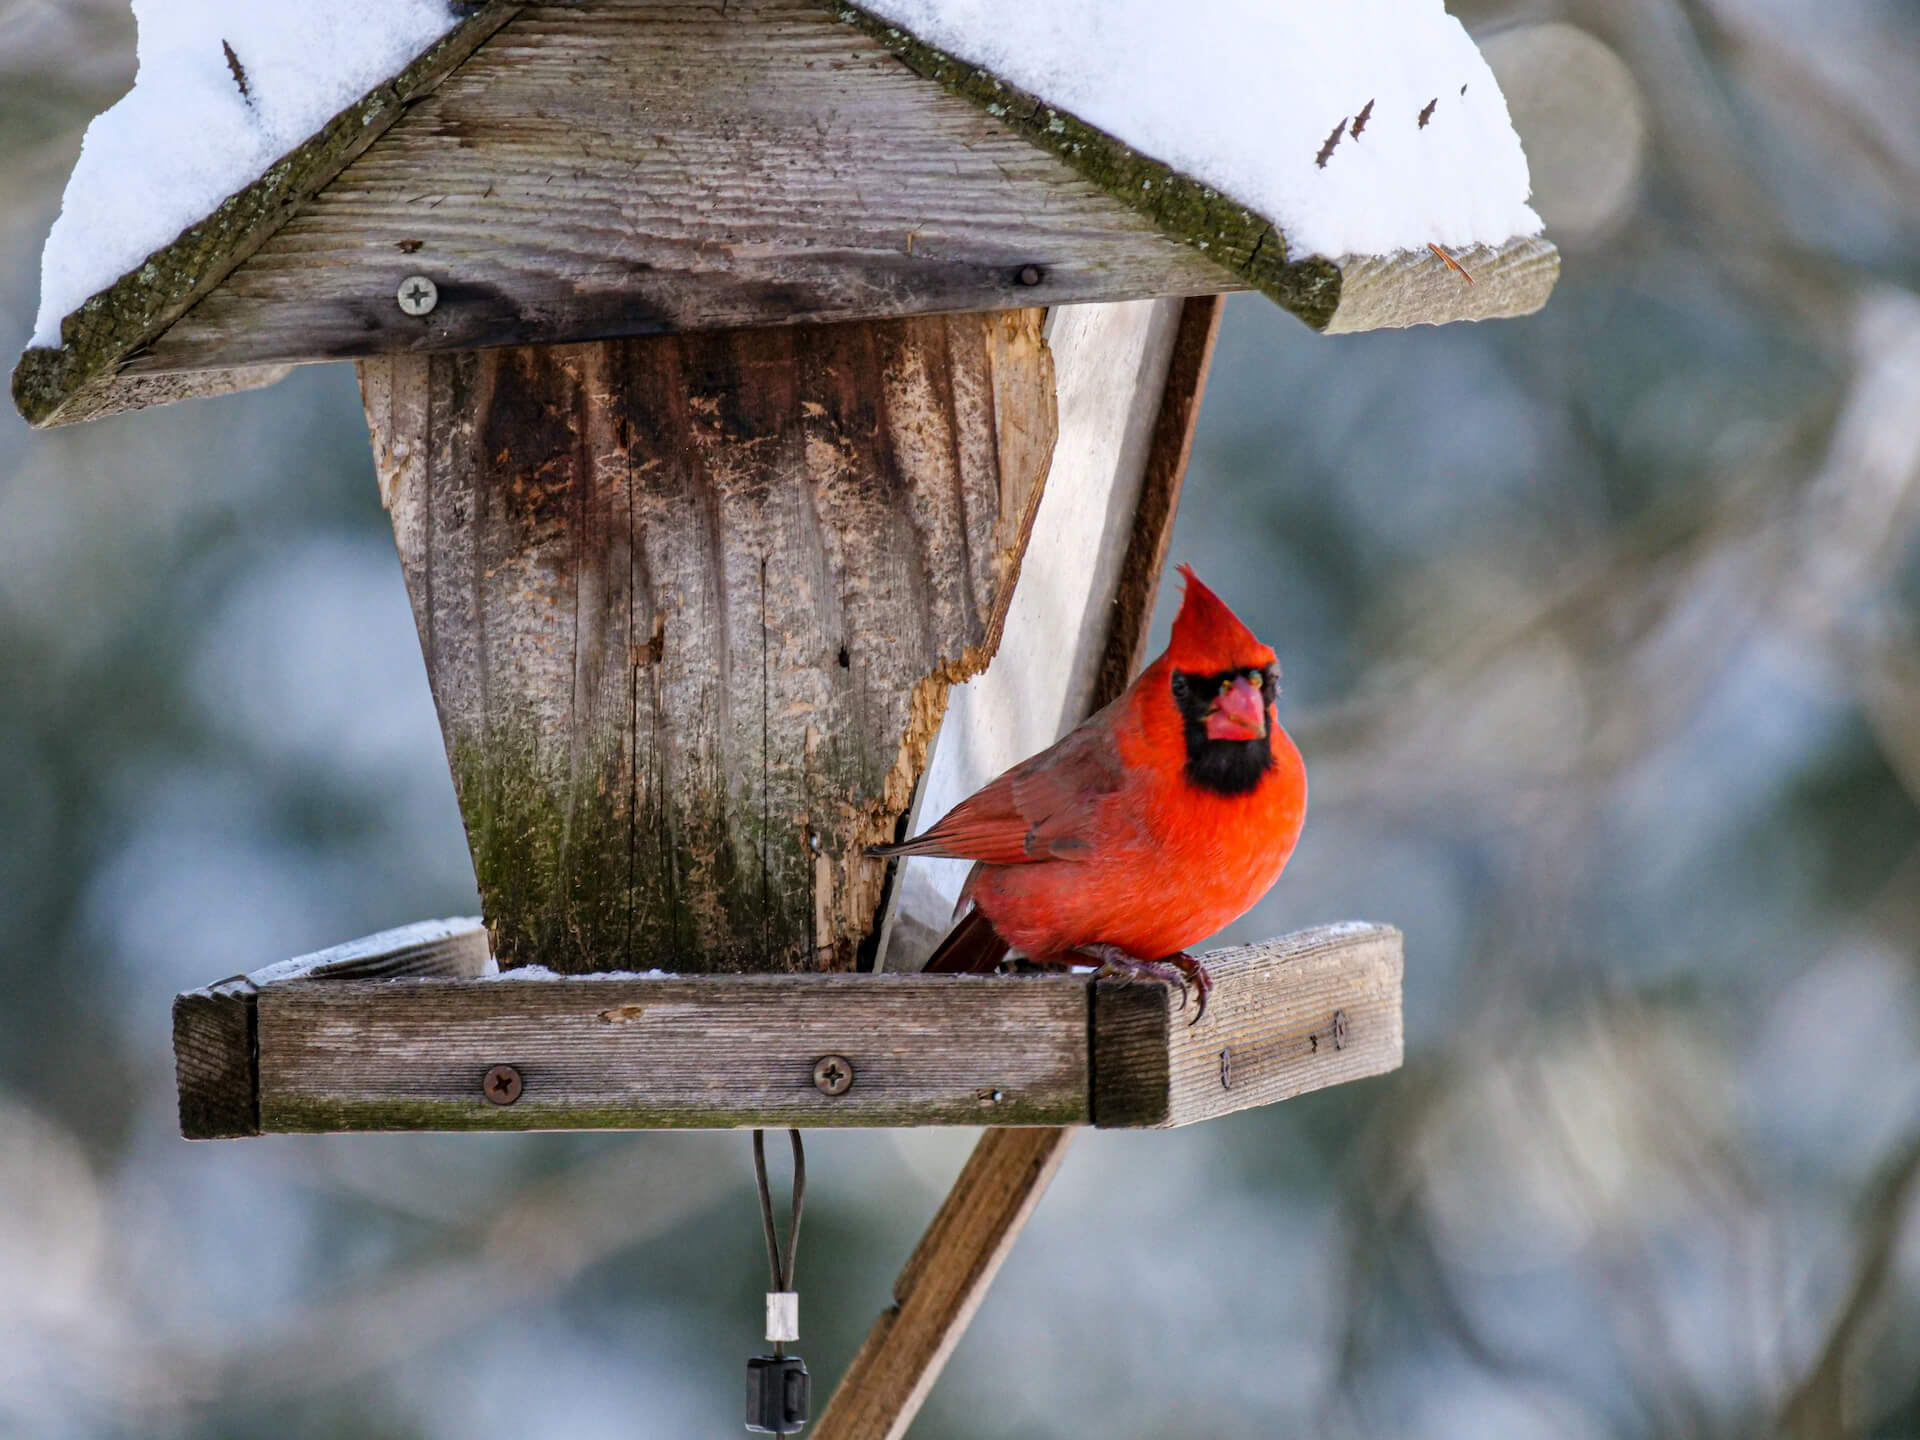 Male red Cardinal perched on a wooden bird feeder.